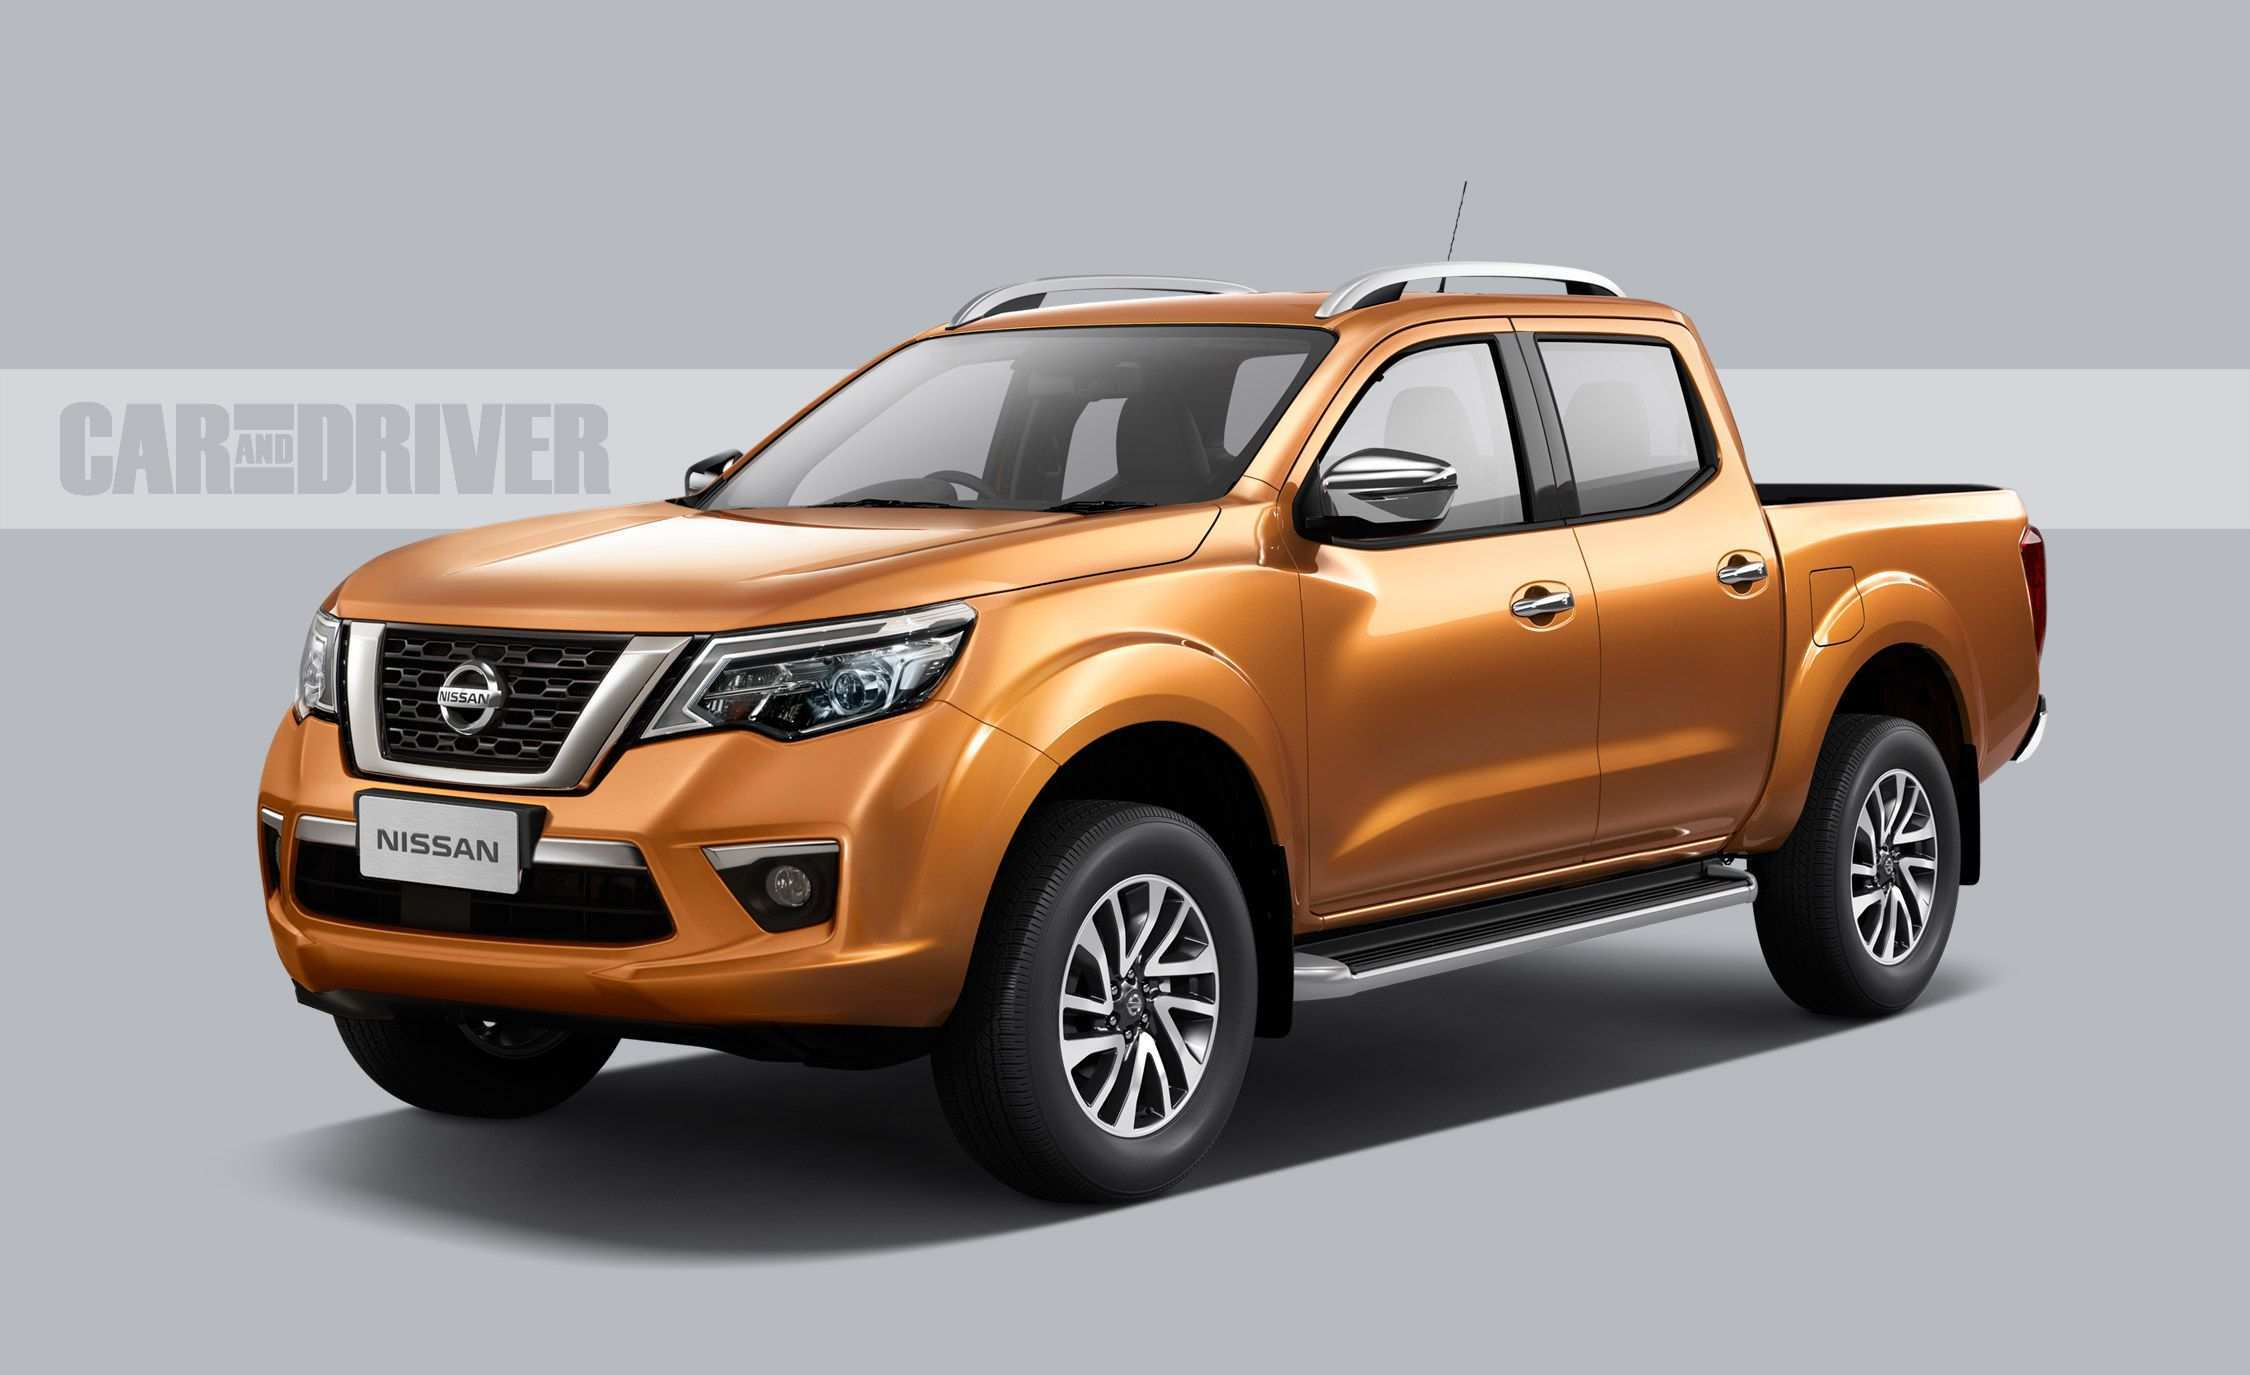 81 All New 2019 Nissan Pickup Price And Release Date